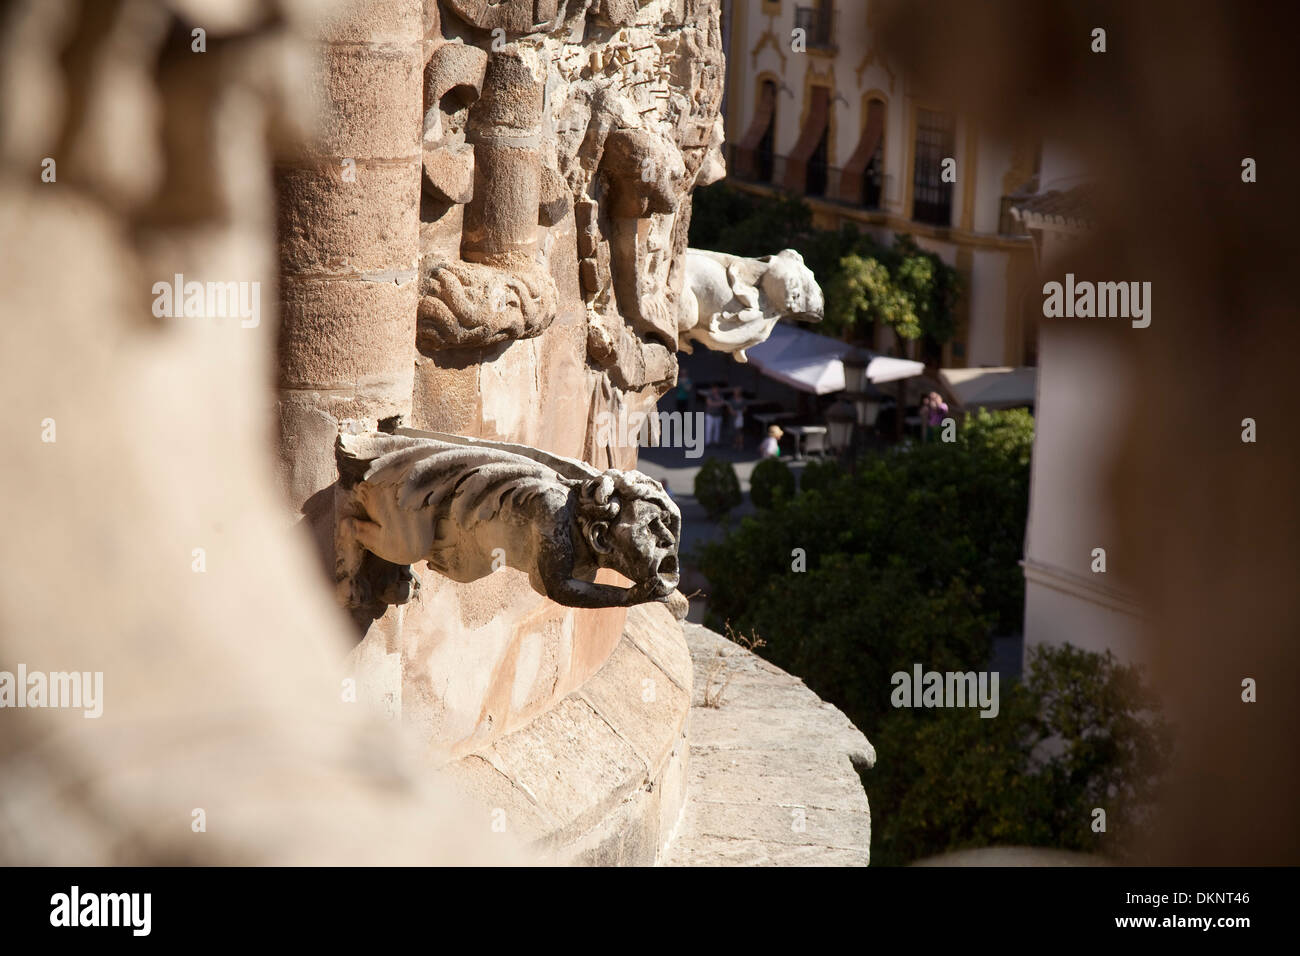 Gargoyles on the cathedral. Seville, Andalusia, Spain - Stock Image